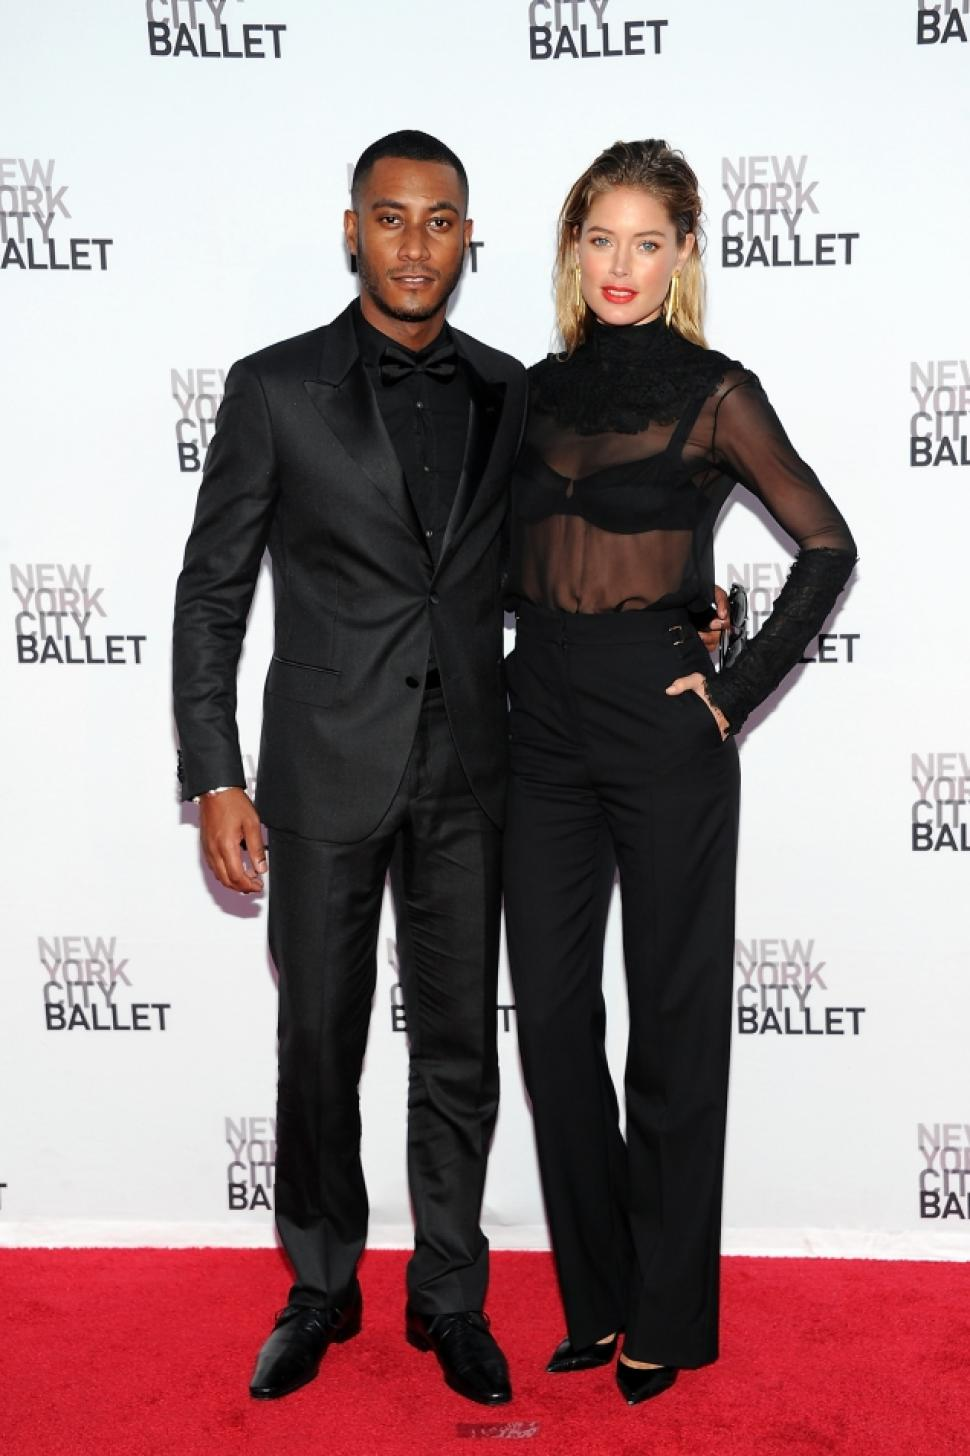 new-york-city-ballet-2013-fall-gala.jpg